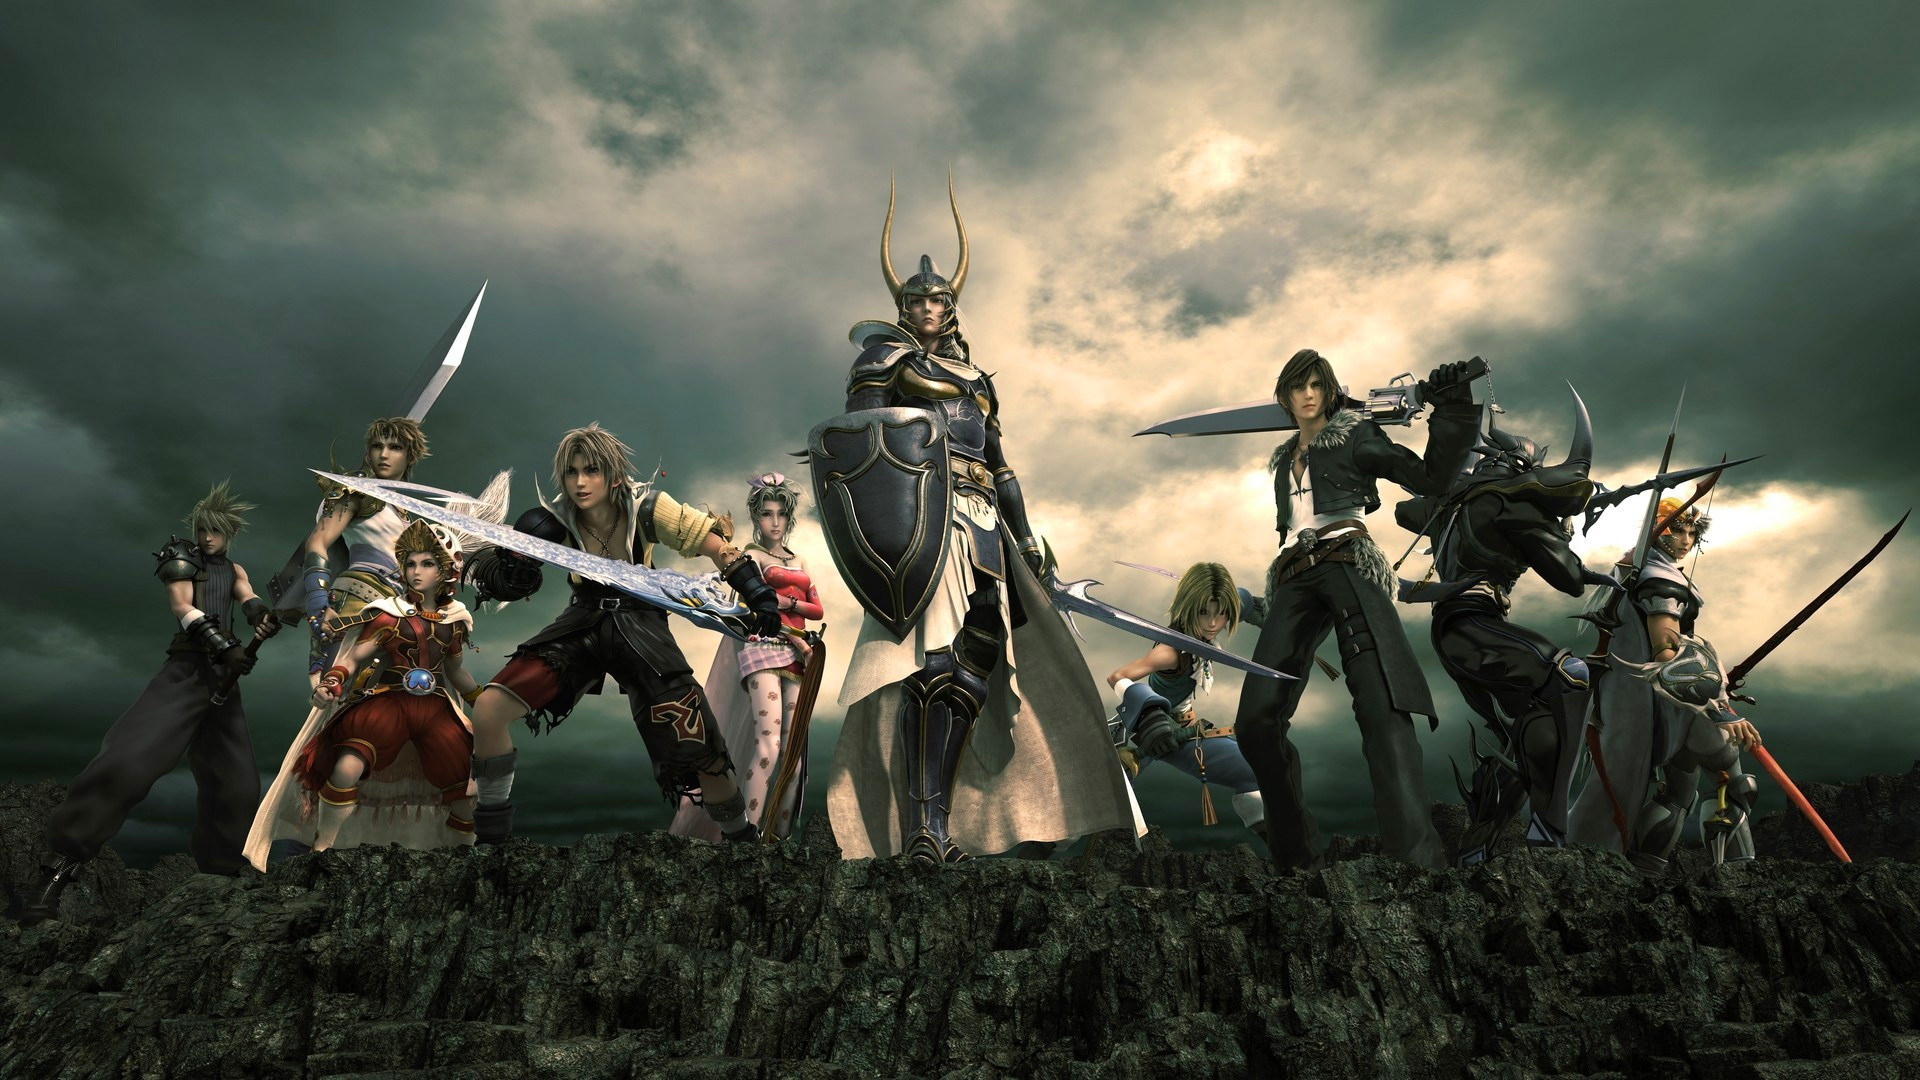 Dissidia Final Fantasy Nt Wallpapers In Ultra Hd 4k Gameranx